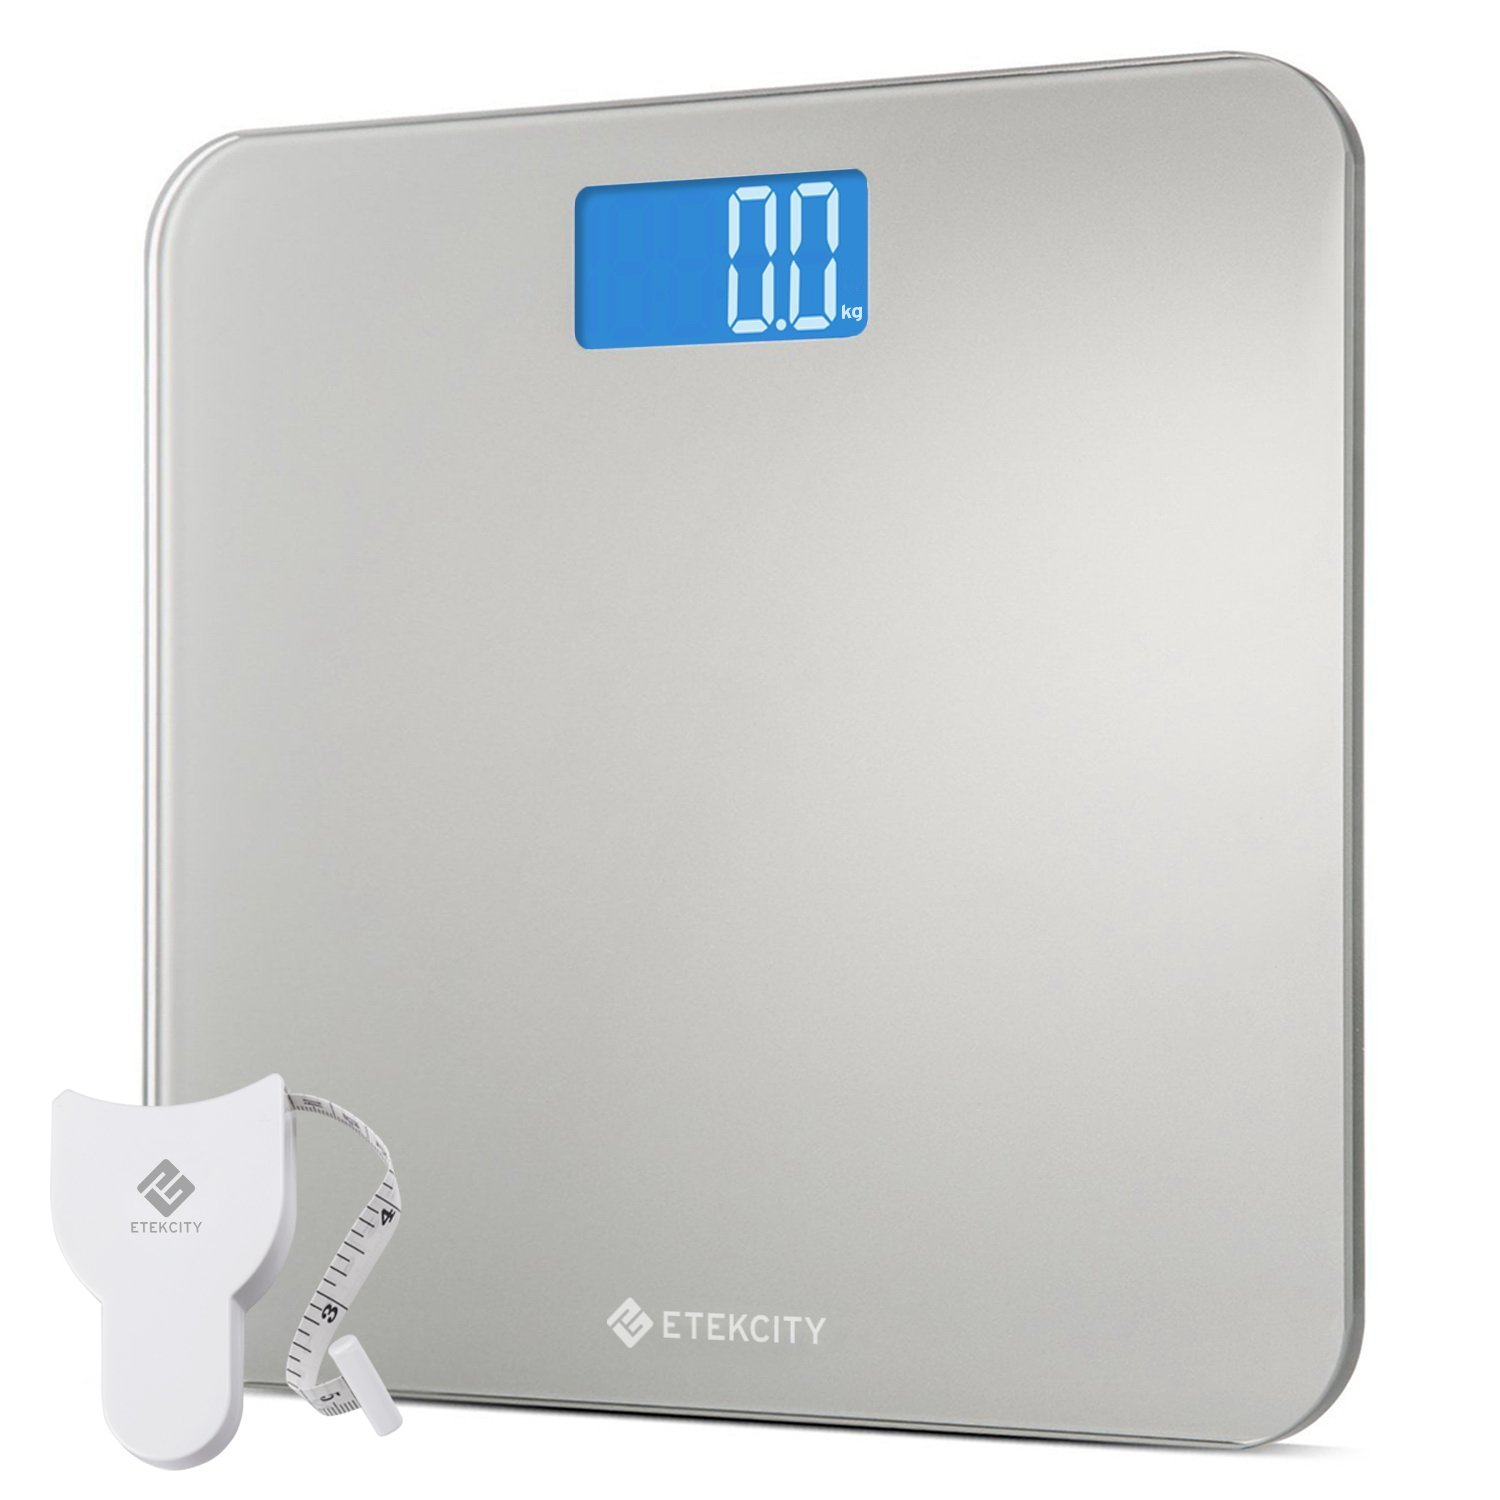 Etekcity High Precision Digital Body Weight Bathroom Scales Weighing Scale with Step-On Technology, Body Measuring Tape Included, 28st/180kg/400lb, Backlight Display HBHWFE04KEfba